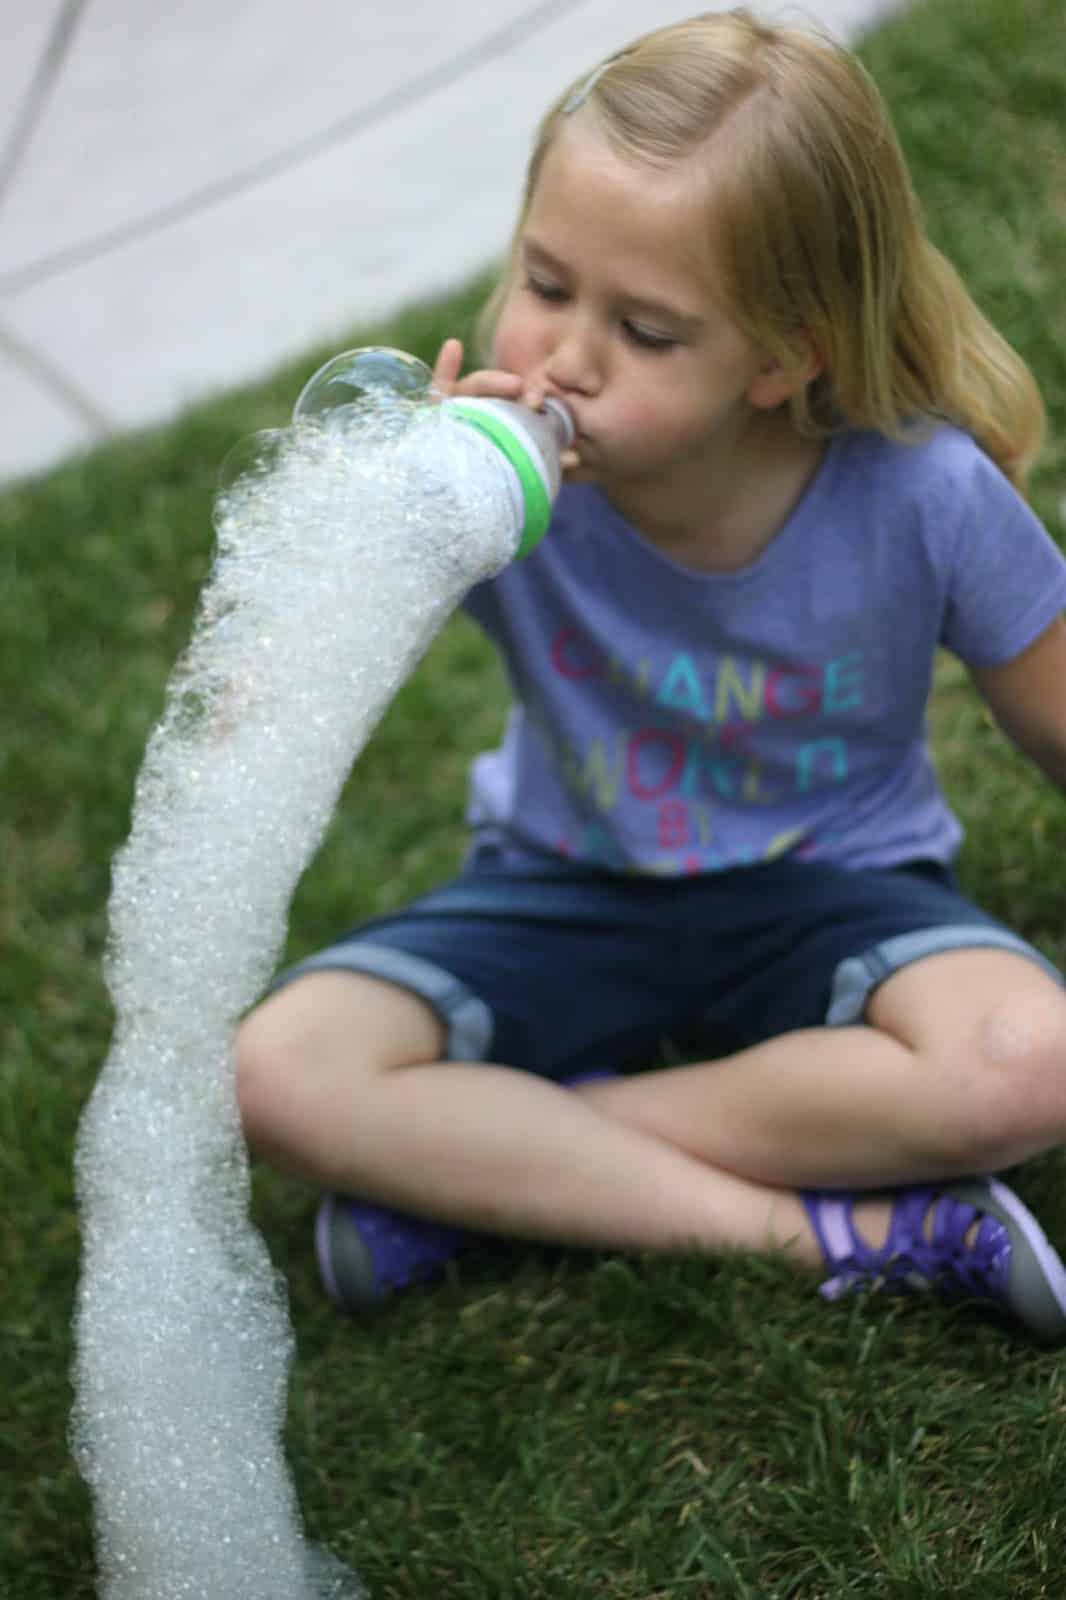 girl blowing bubble snakes